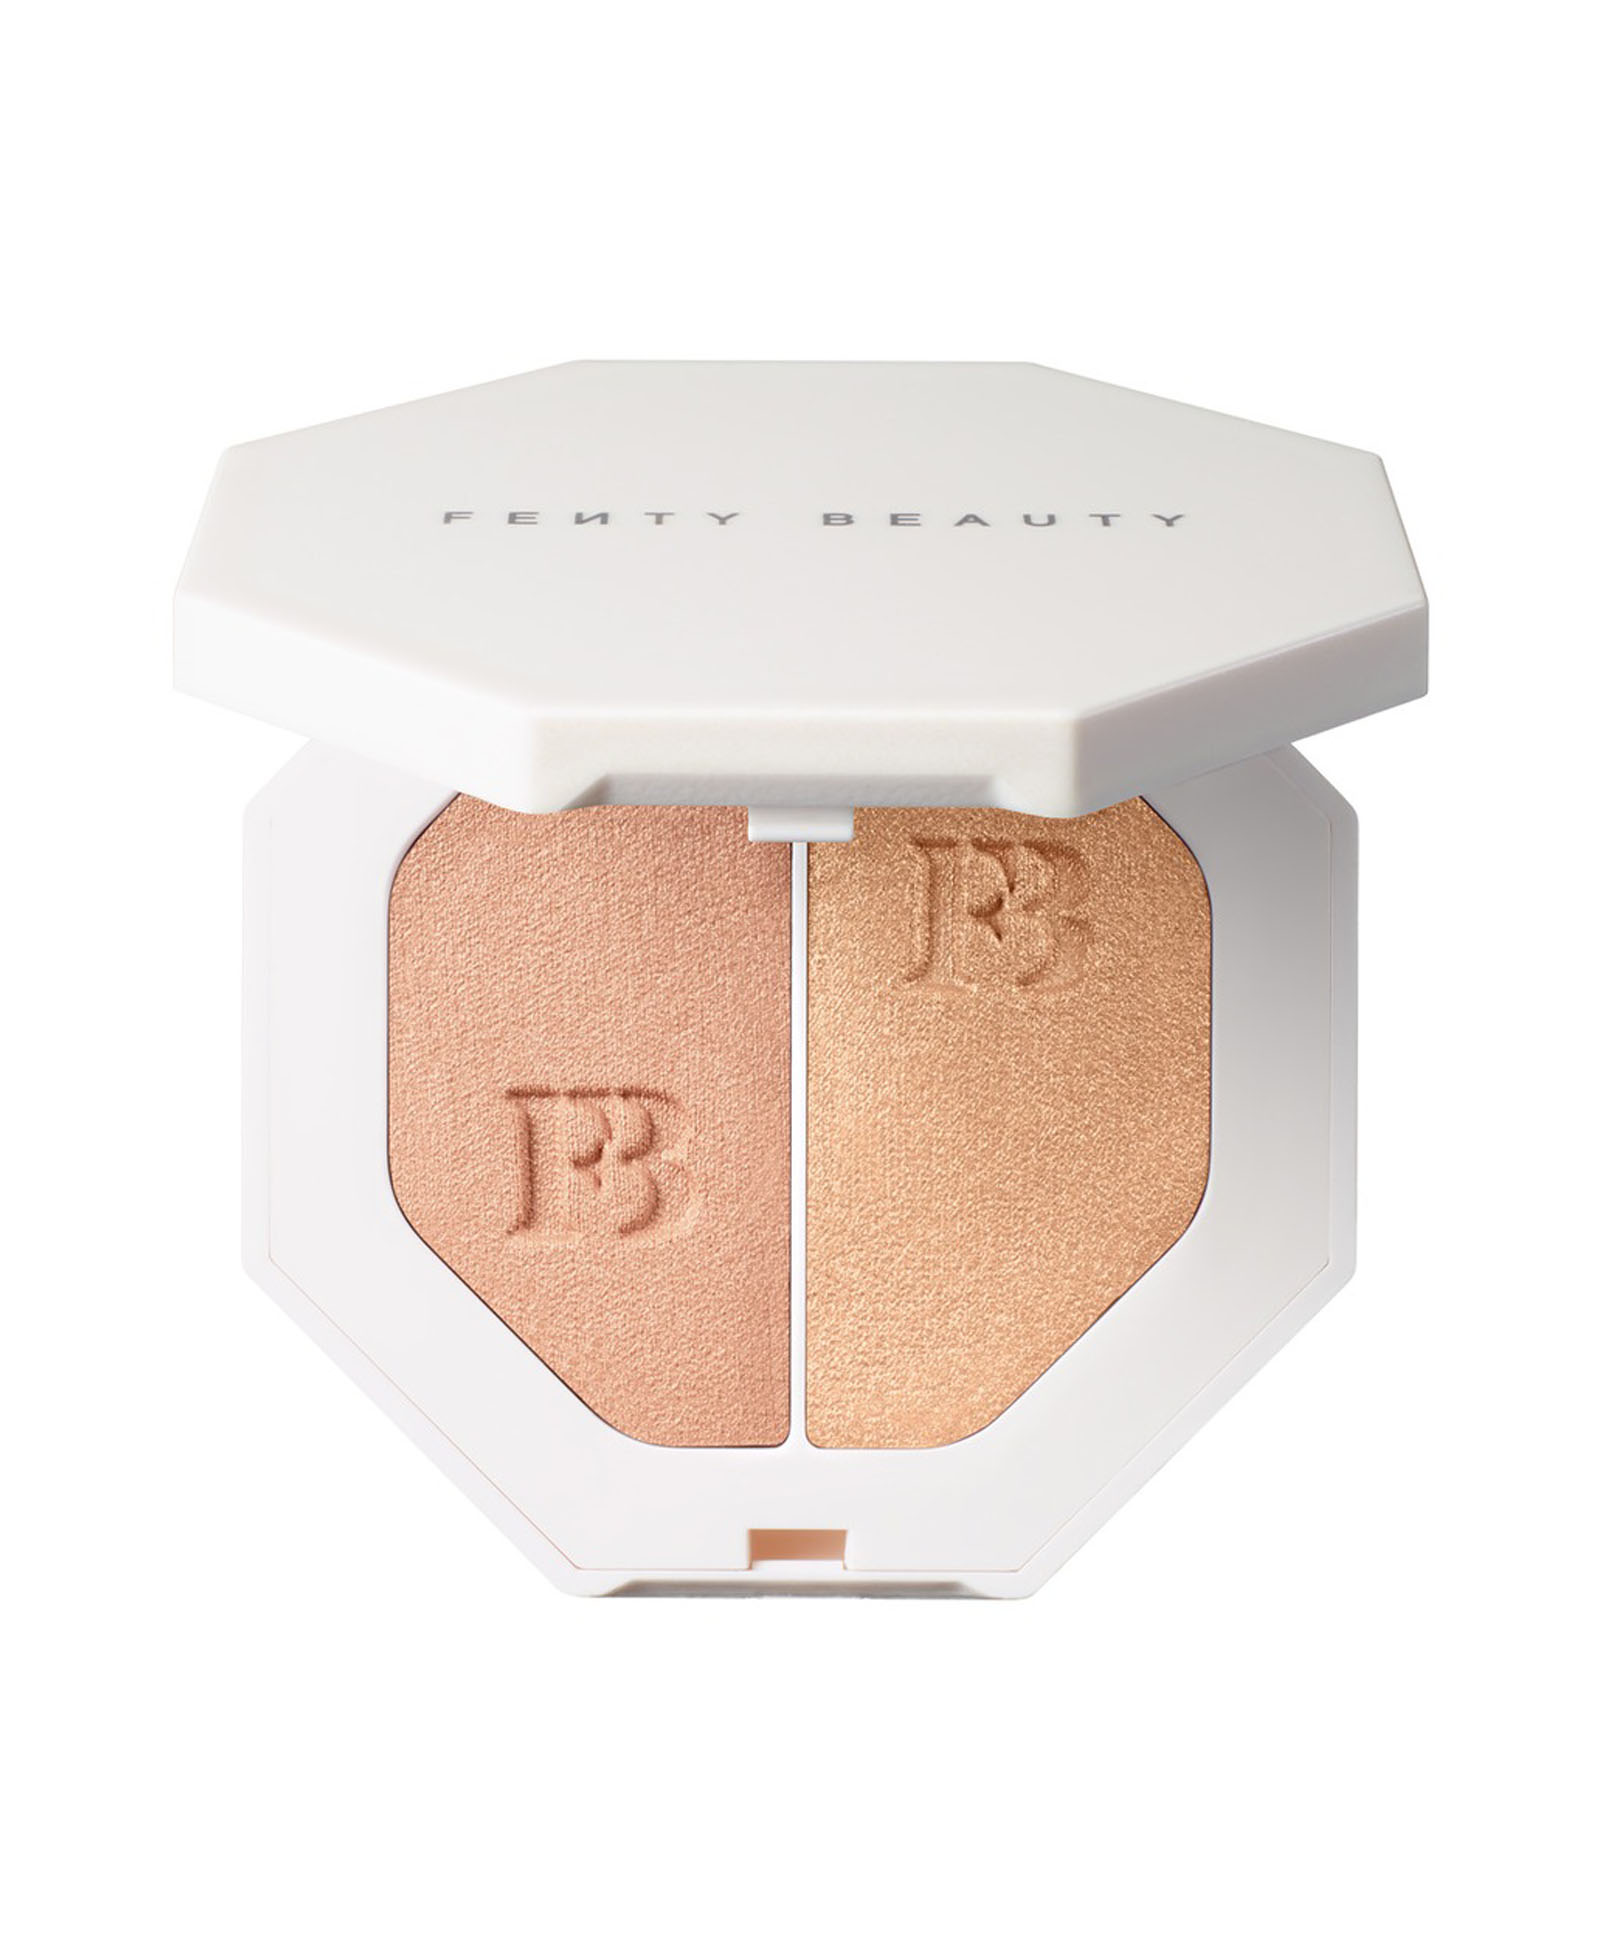 "<a href=""/brand/fenty-beauty/""><strong>FENTY BEAUTY</strong></a><br/>Killawat Free Style Highlighter Image"